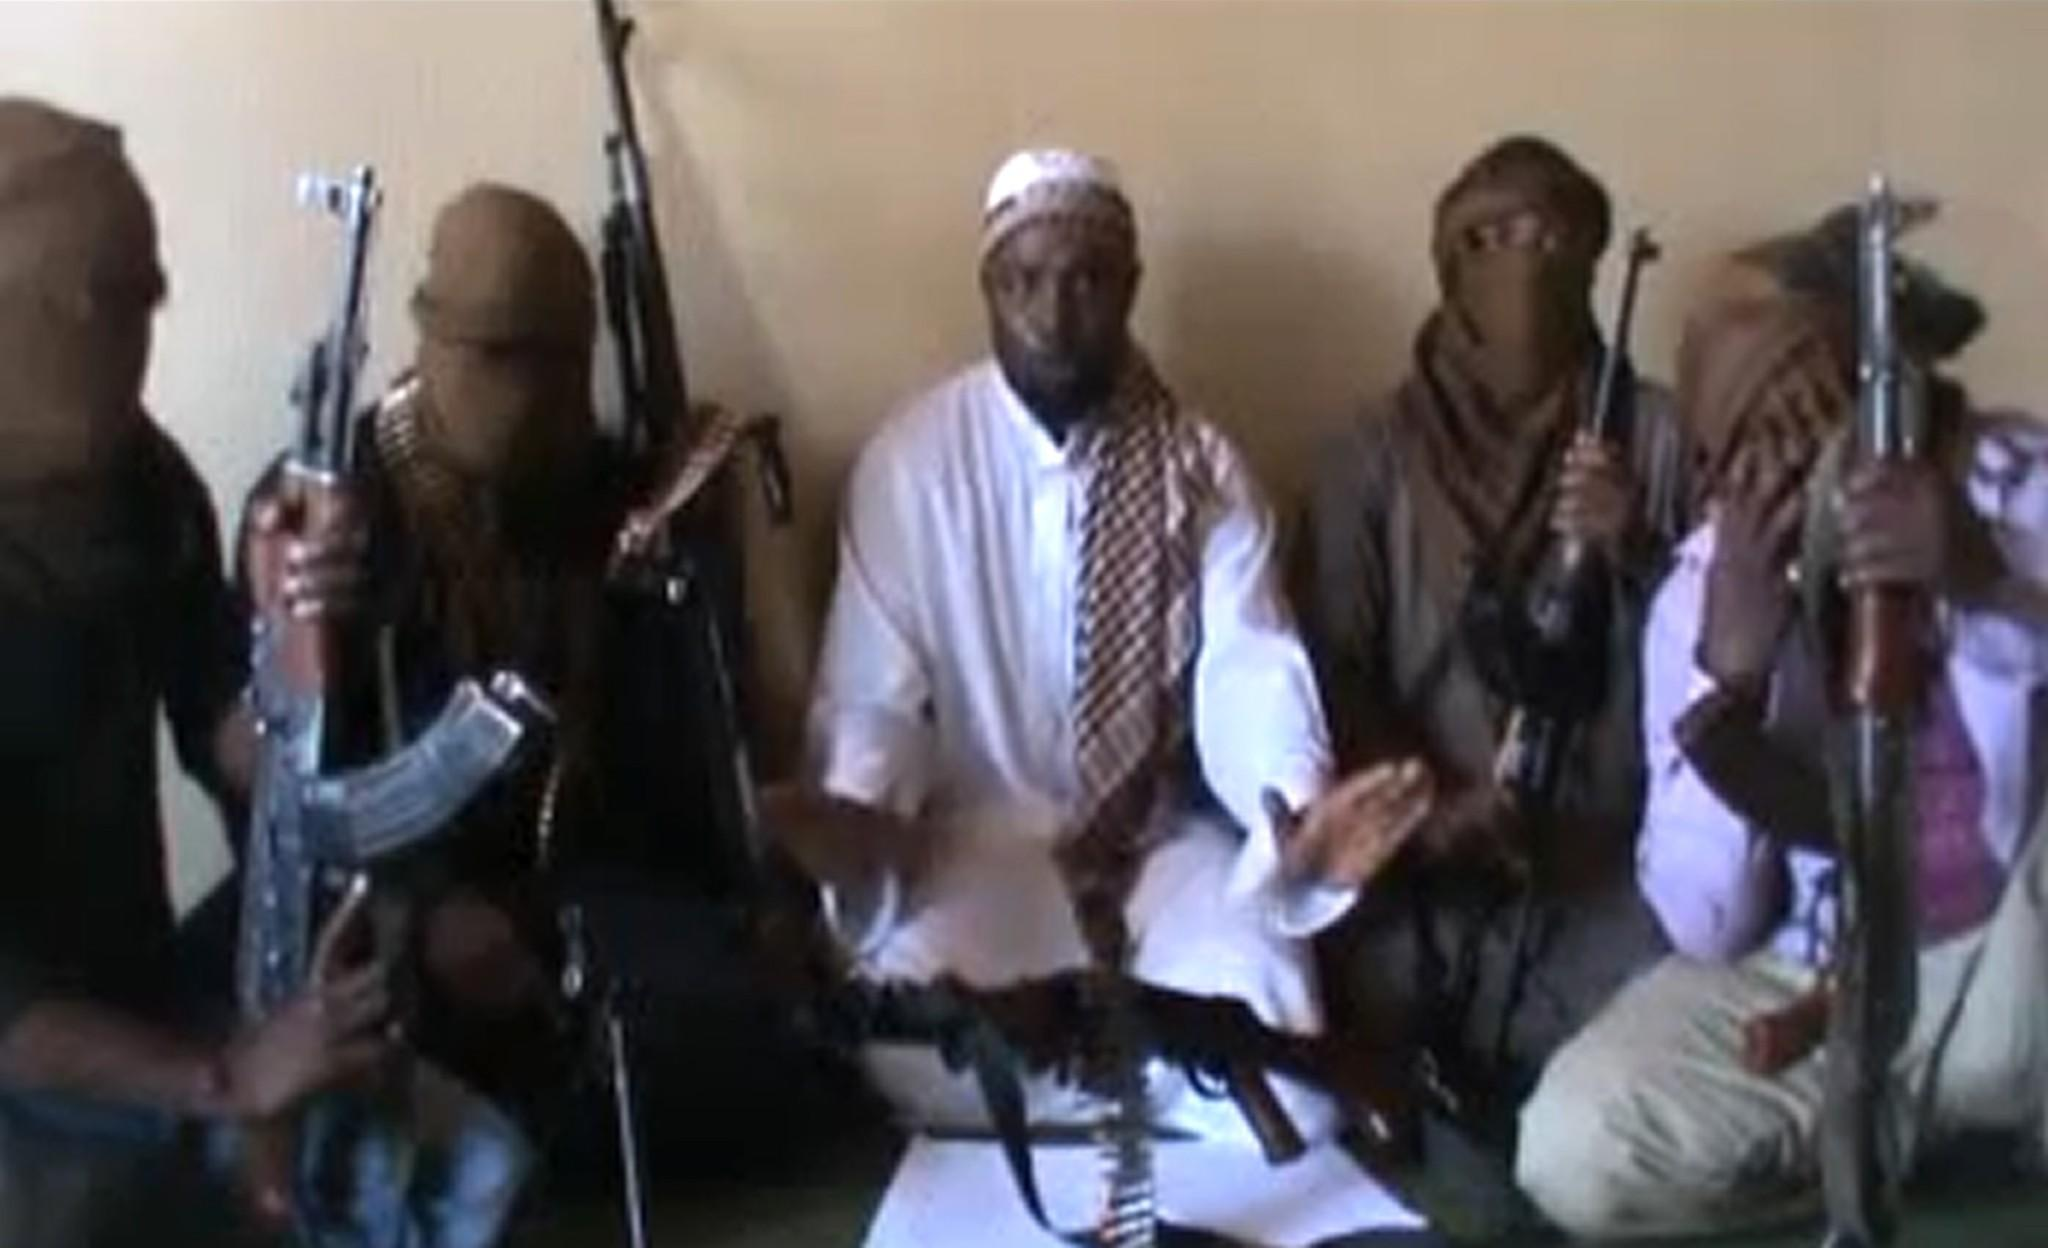 Residents of Chibok, Nigeria, say the militant group Boko Haram abducted dozens of schoolgirls from their boarding school in the middle of the night. Above, a screen capture of a video posted on YouTube in April 2012 that purports to show members of Boko Haram.